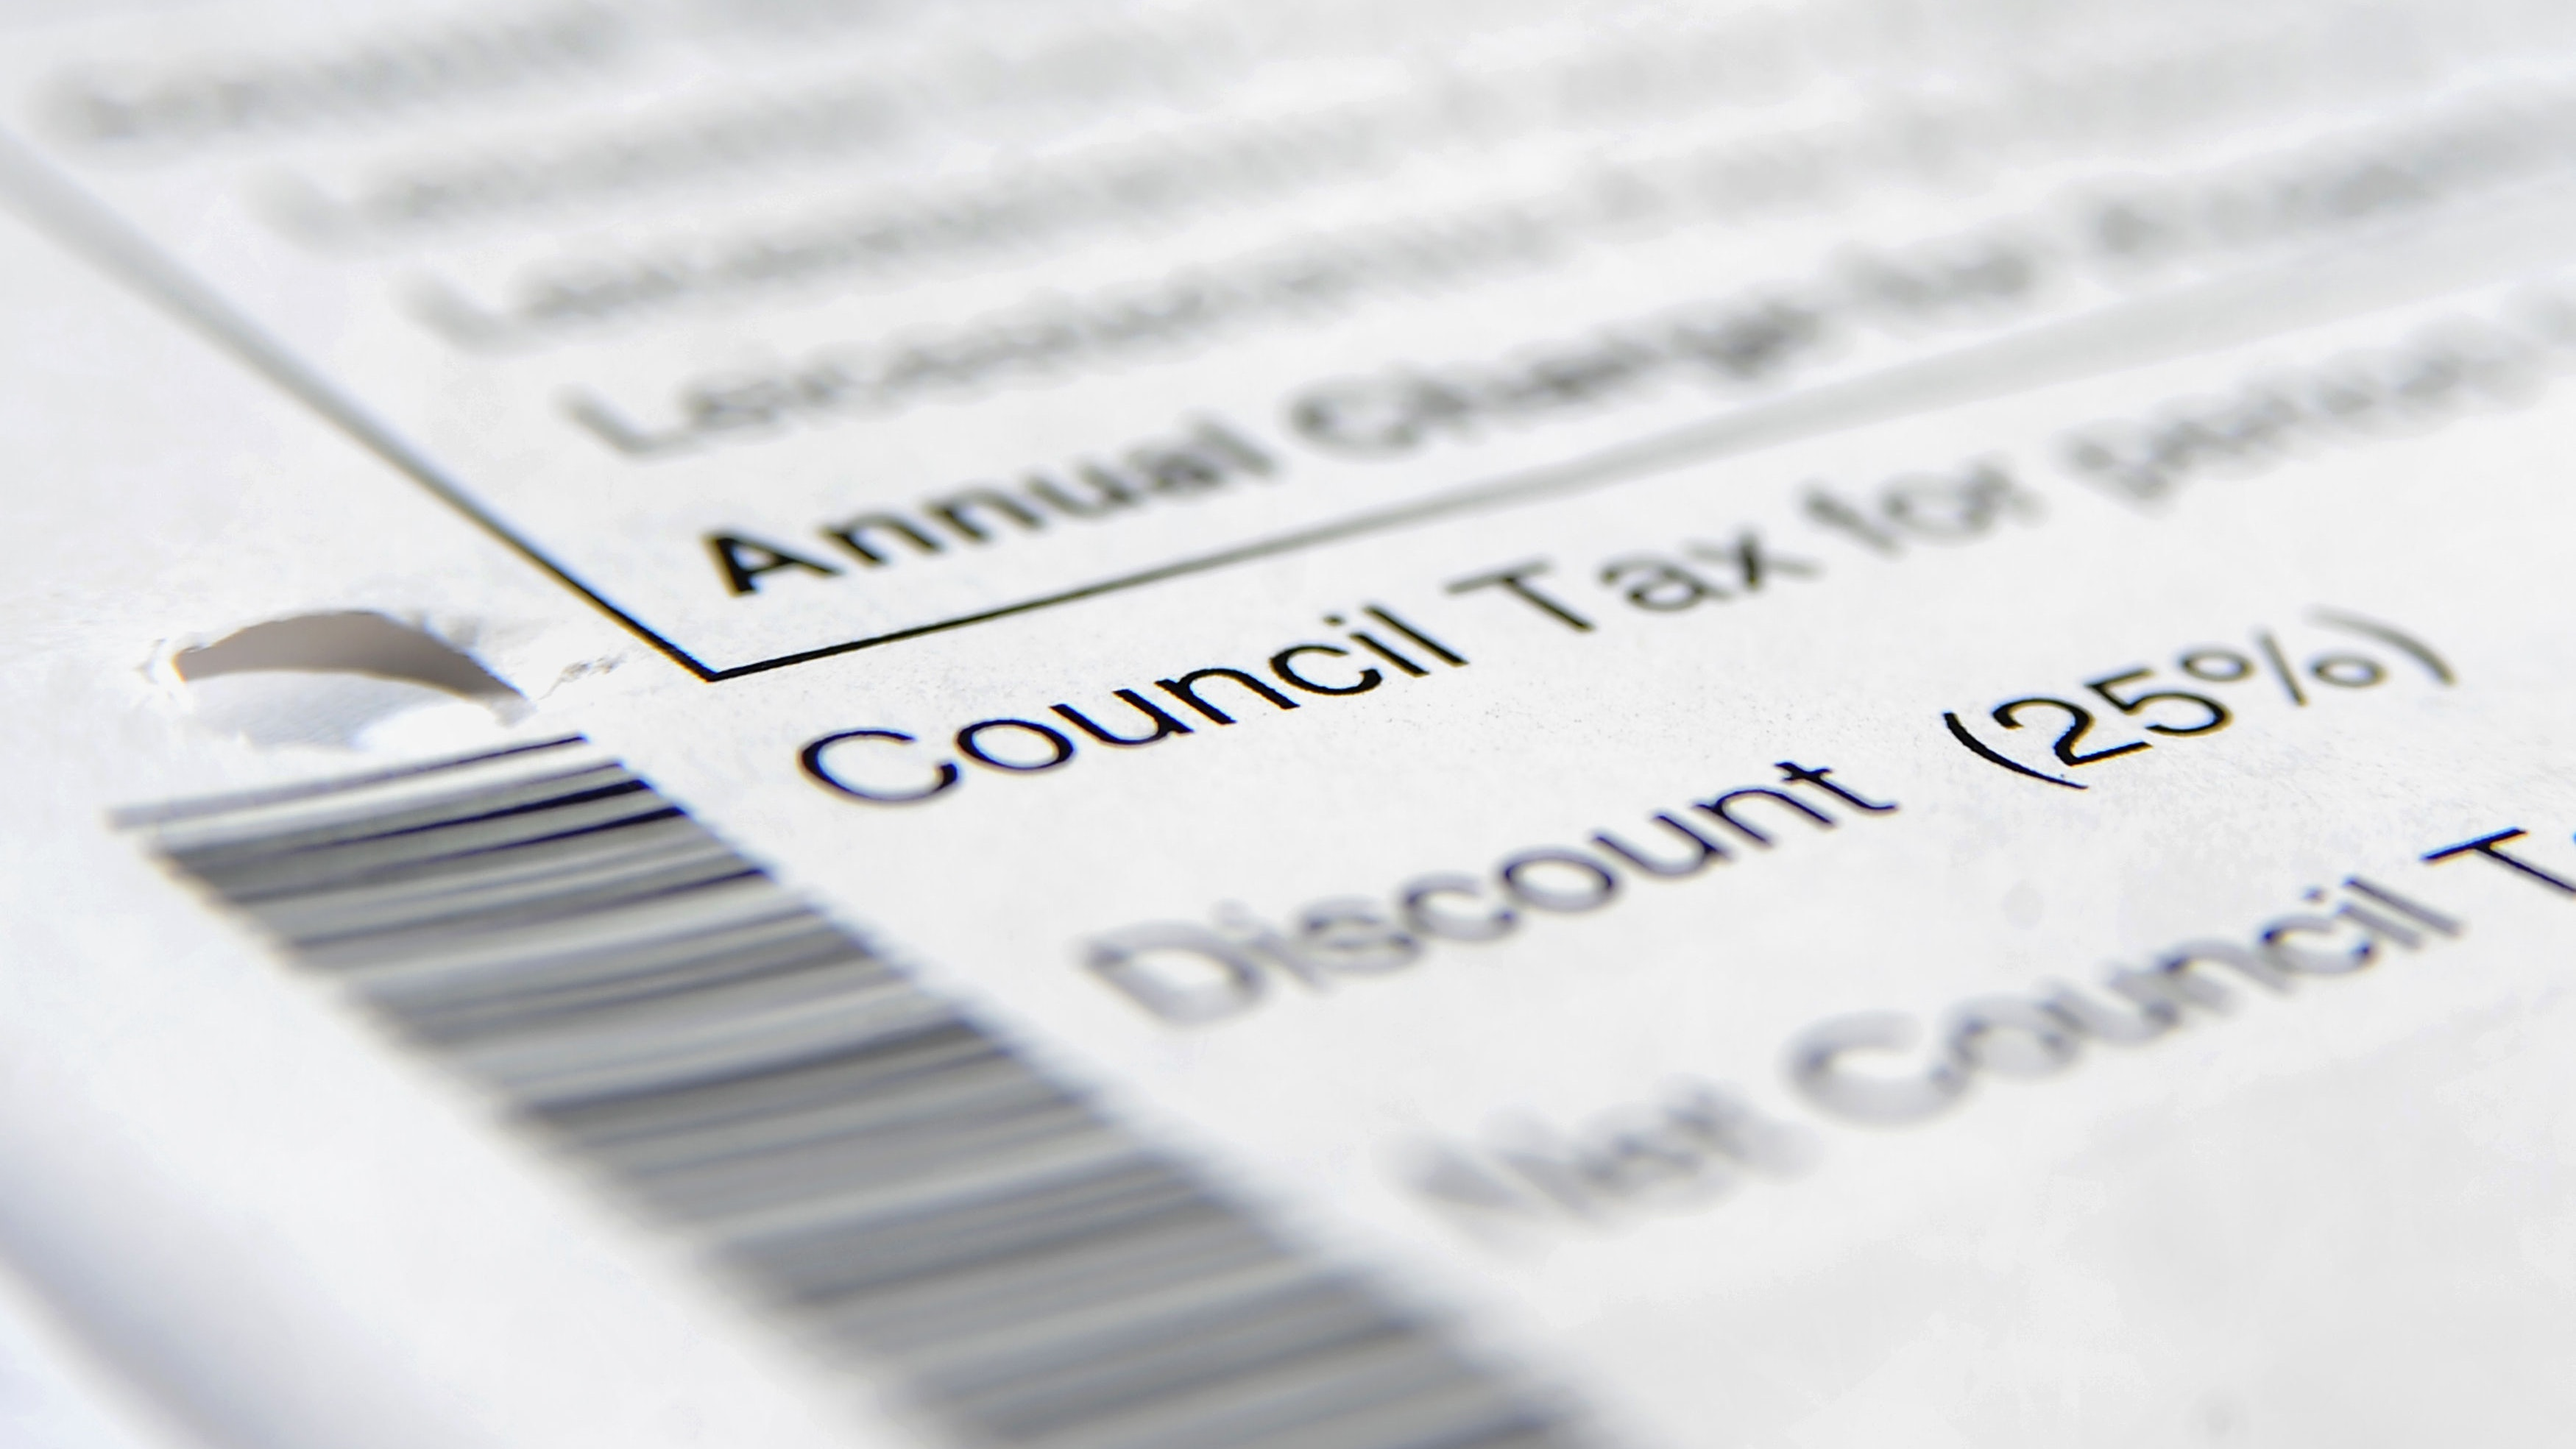 Council tax hikes deliberate 'throughout England'